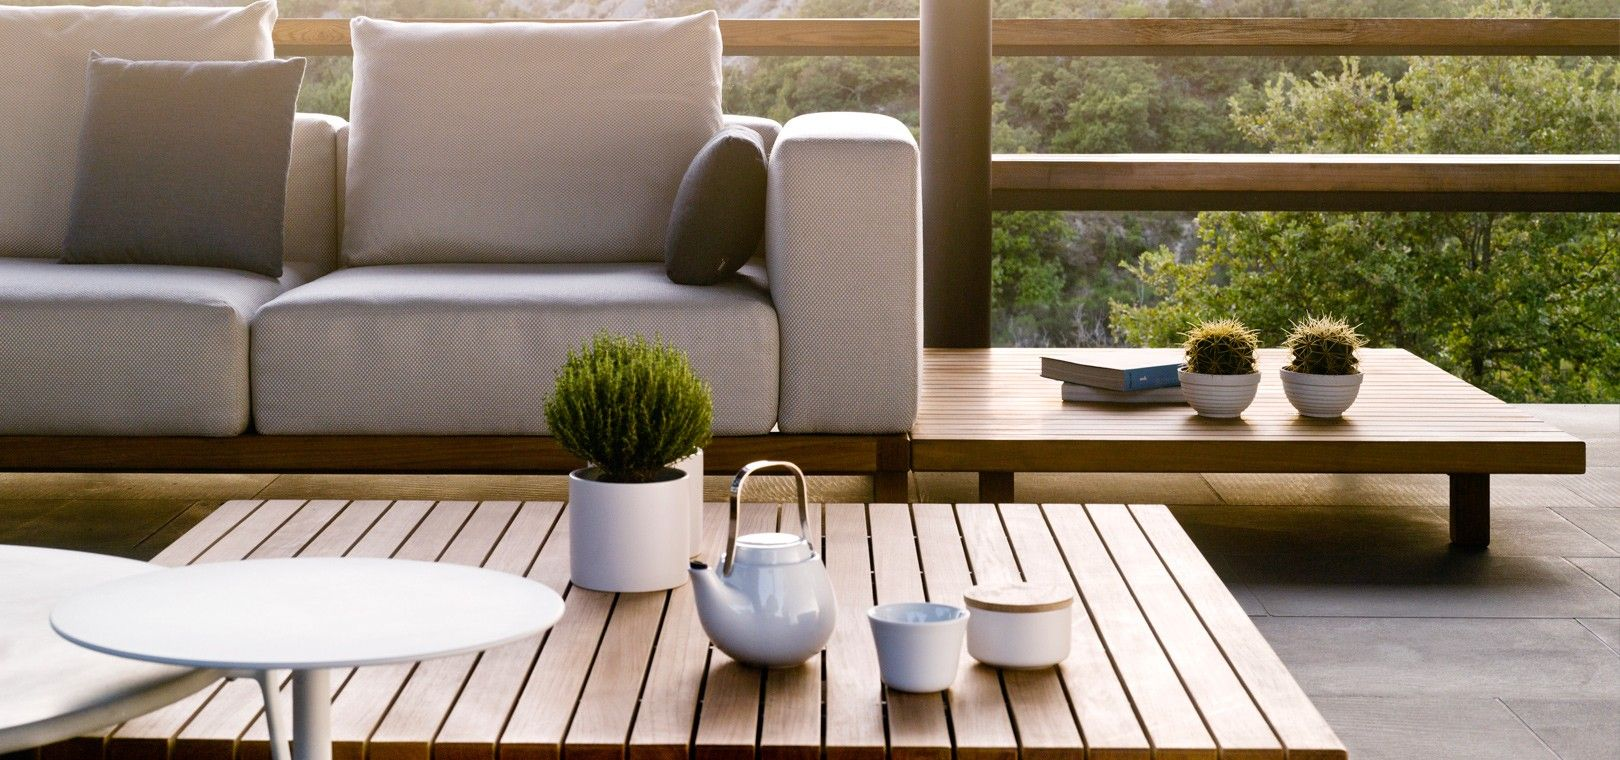 Tribù\'s Vis à vis sofa, is an exclusive outdoor sofa in teak with ...